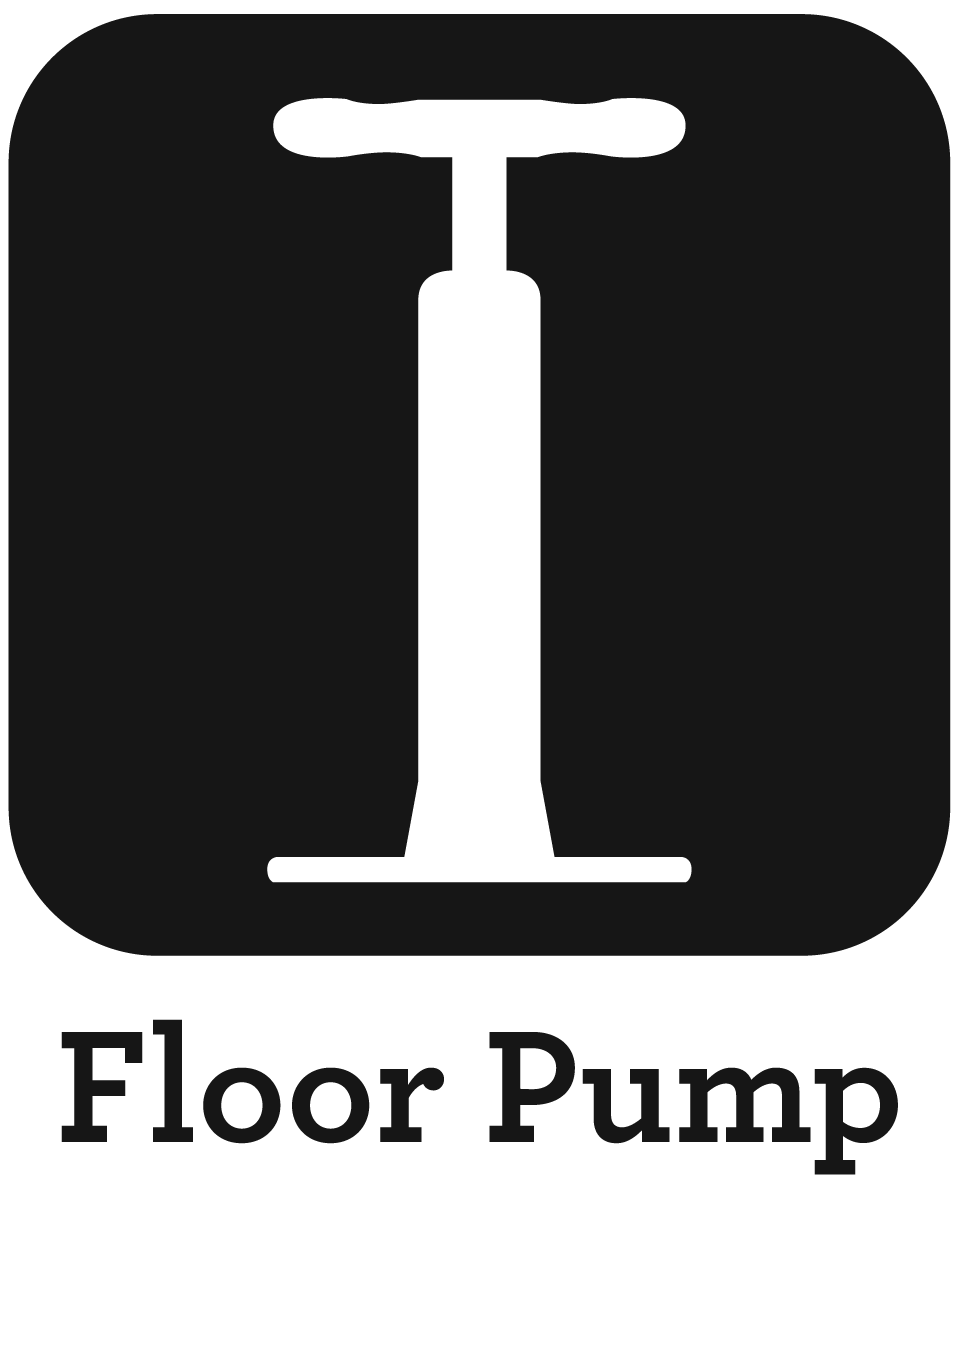 Floor Pump.png